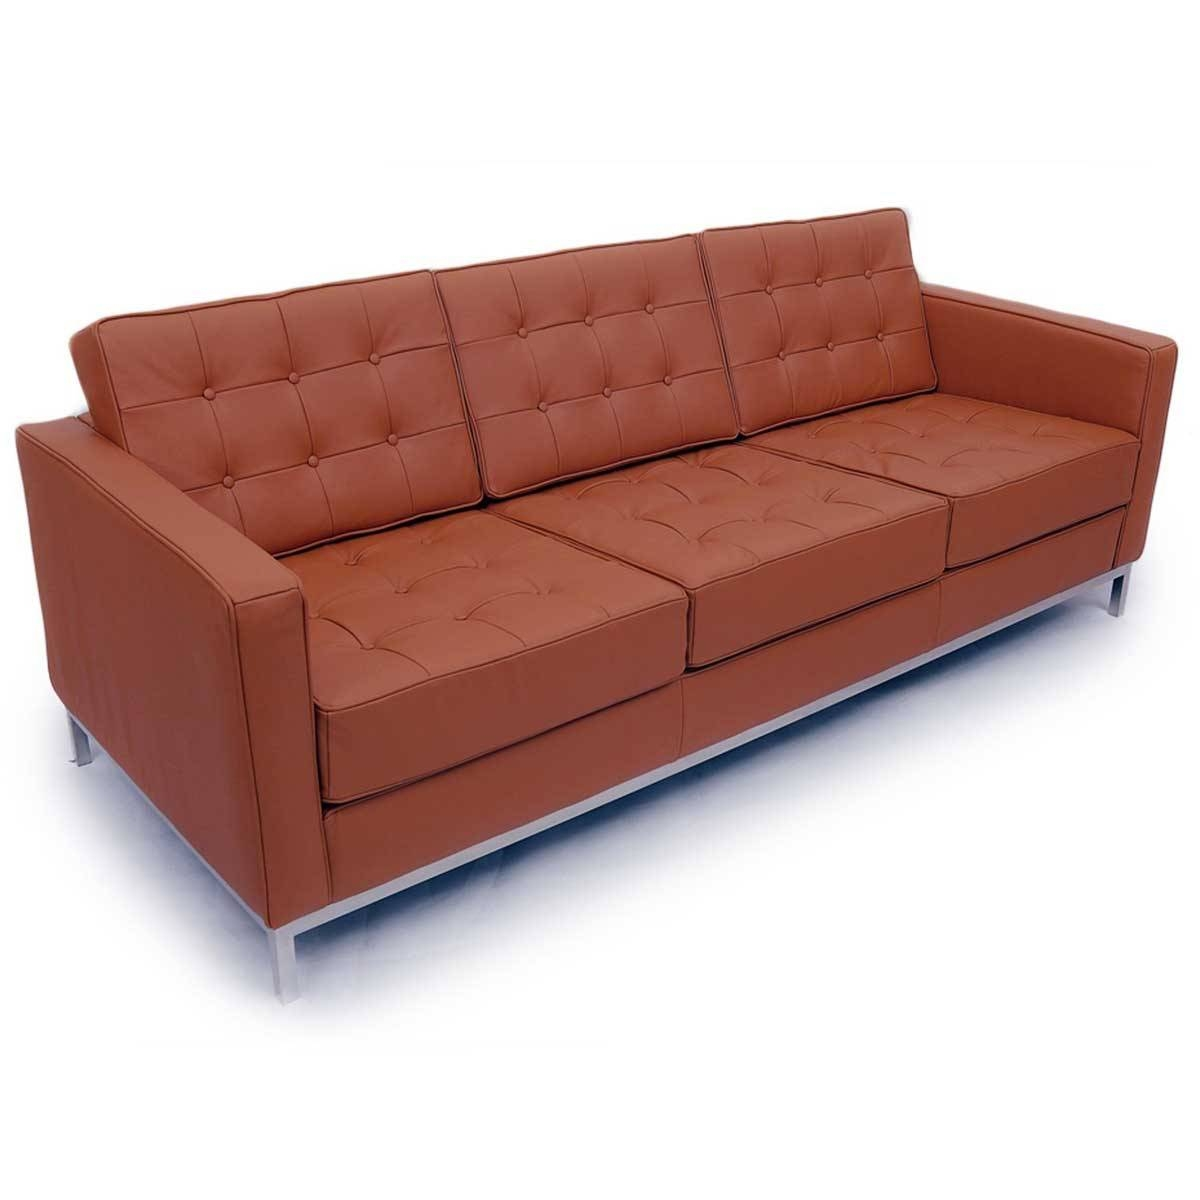 Aniline Leather Sectional regarding Aniline Leather Sofas (Image 4 of 30)